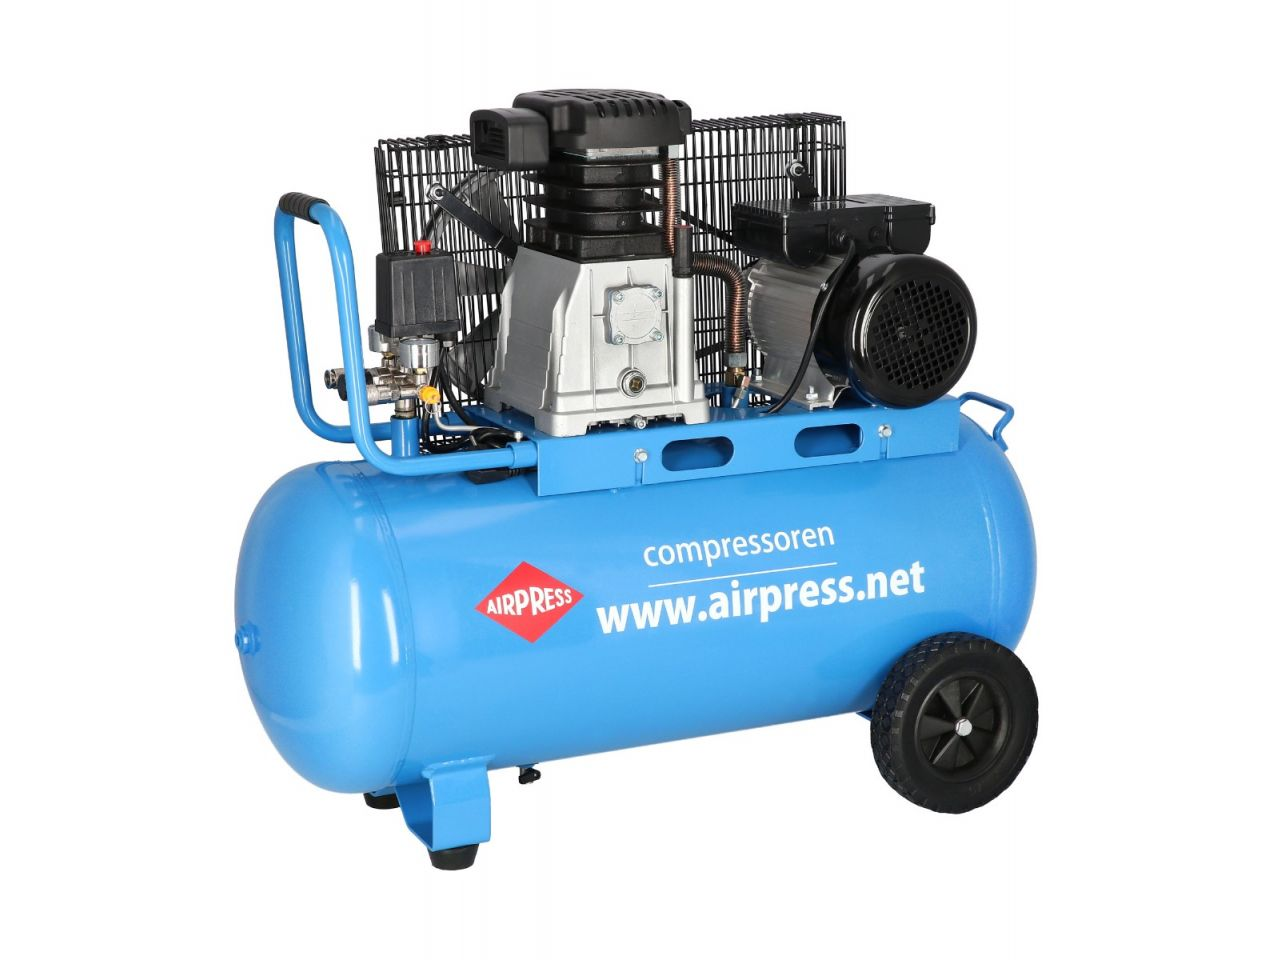 Airpress Compressor HL 340/90